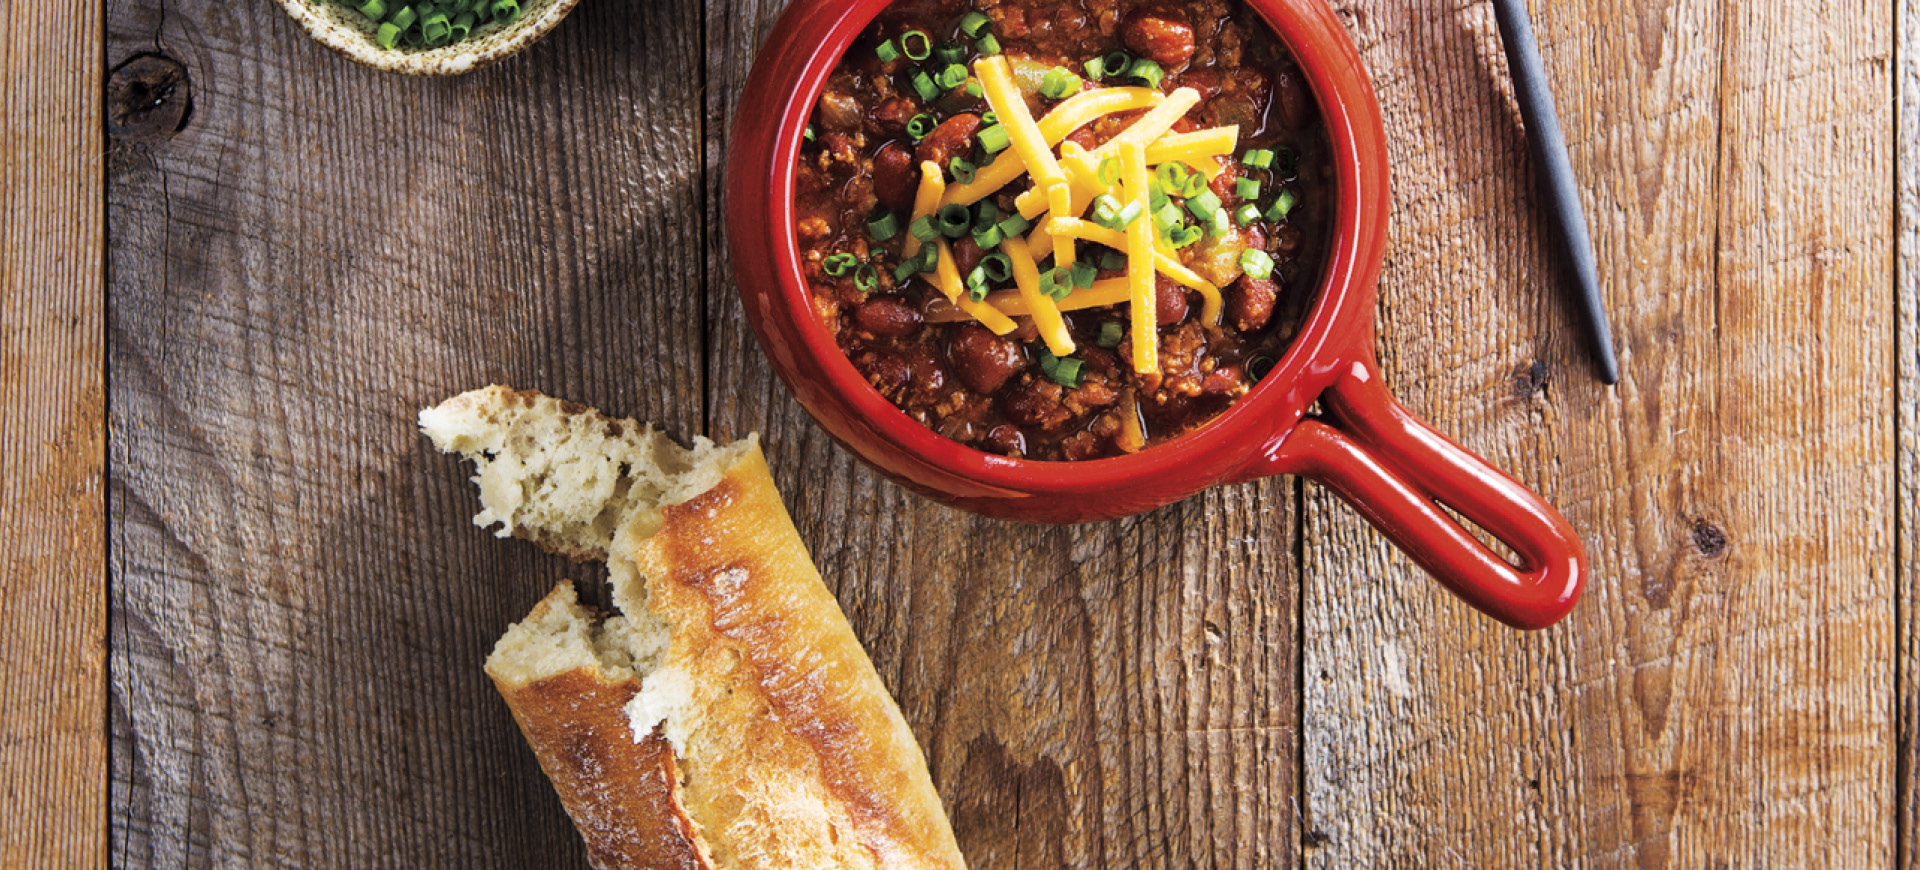 Slow Cooker 5-Ingredient Beer Chili